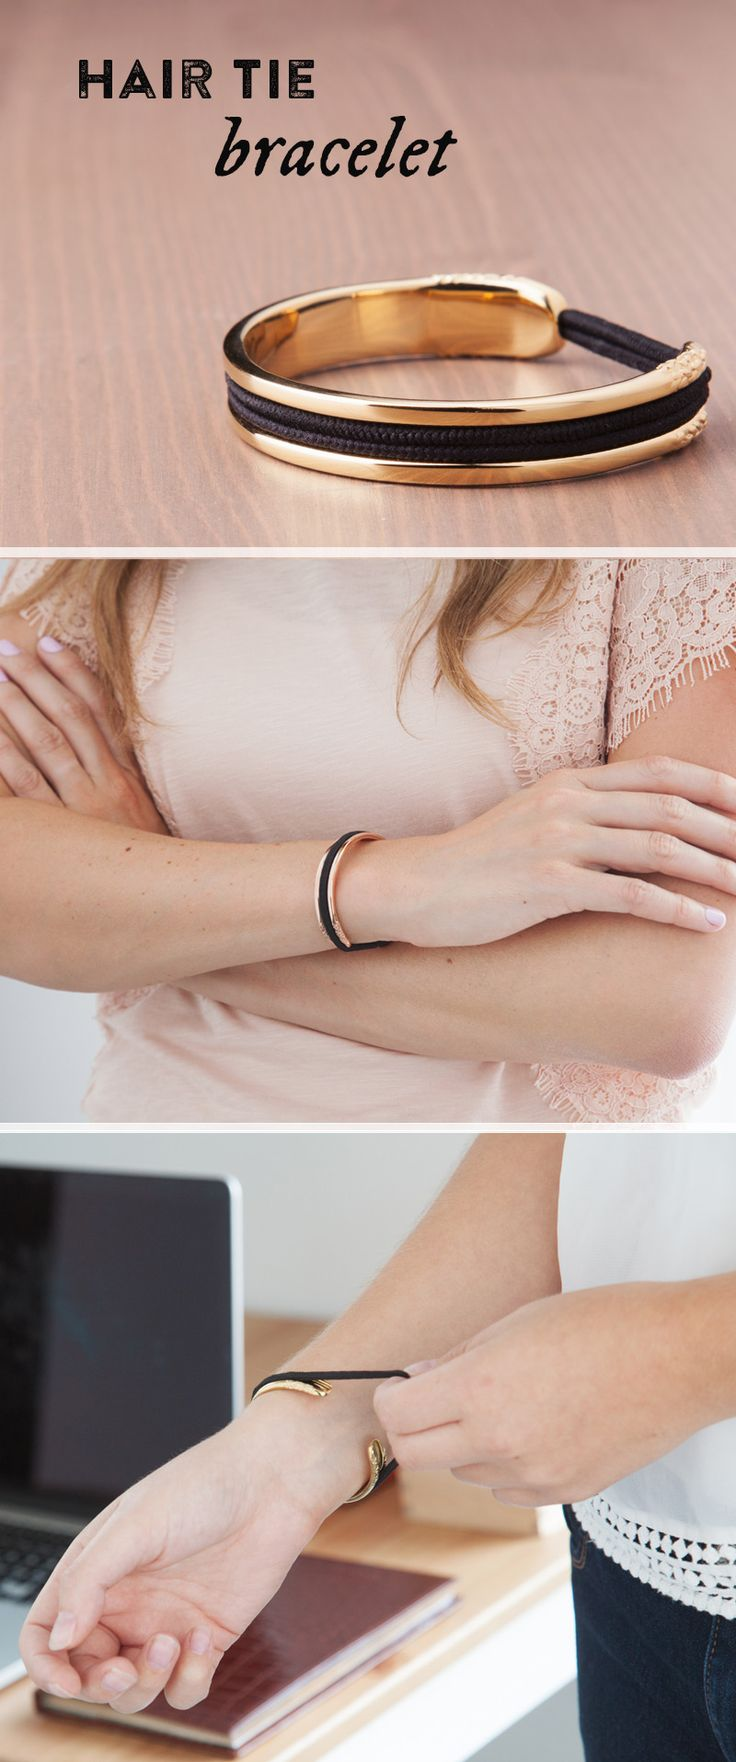 I NEED THIS. Carry a hair elastic on your wrist in a way that's elegant AND keeps your wrist indent-free.